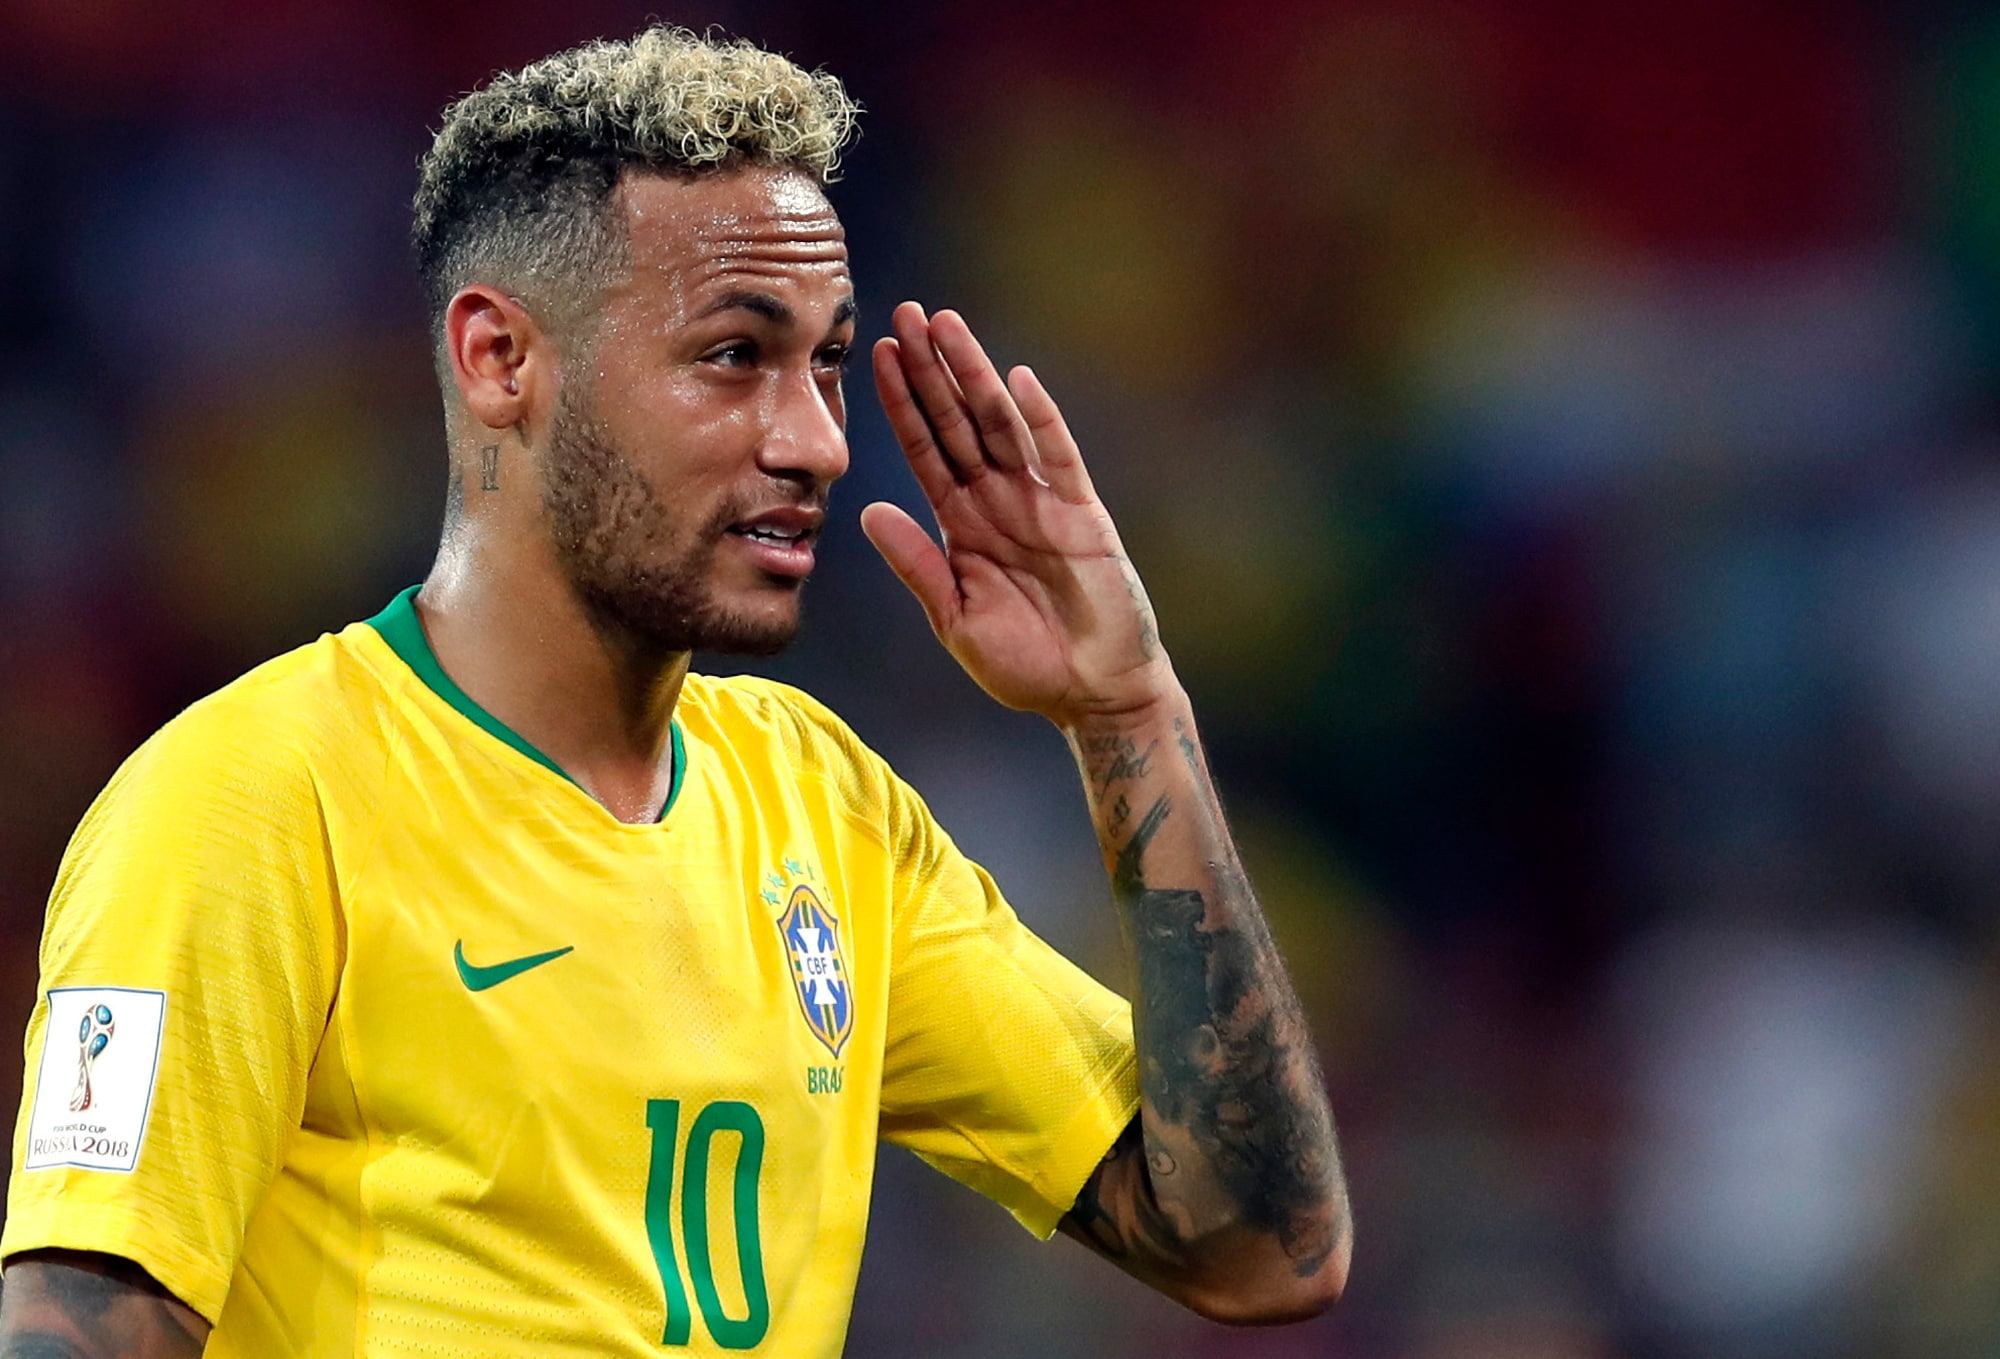 #7. Neymar: Net Worth: $105 million: The Brazilian footballer is the second most popular athlete on social media with 200 million followers on Facebook, Instagram and Twitter. He is on a five-year contract with Paris Saint-Germain through June 2022 worth $350 million in salary. His transfer from Barcelona to PSG stands as the most expensive in the world at $263 million, which the French club paid in full ahead of his signing. (Image: AP)